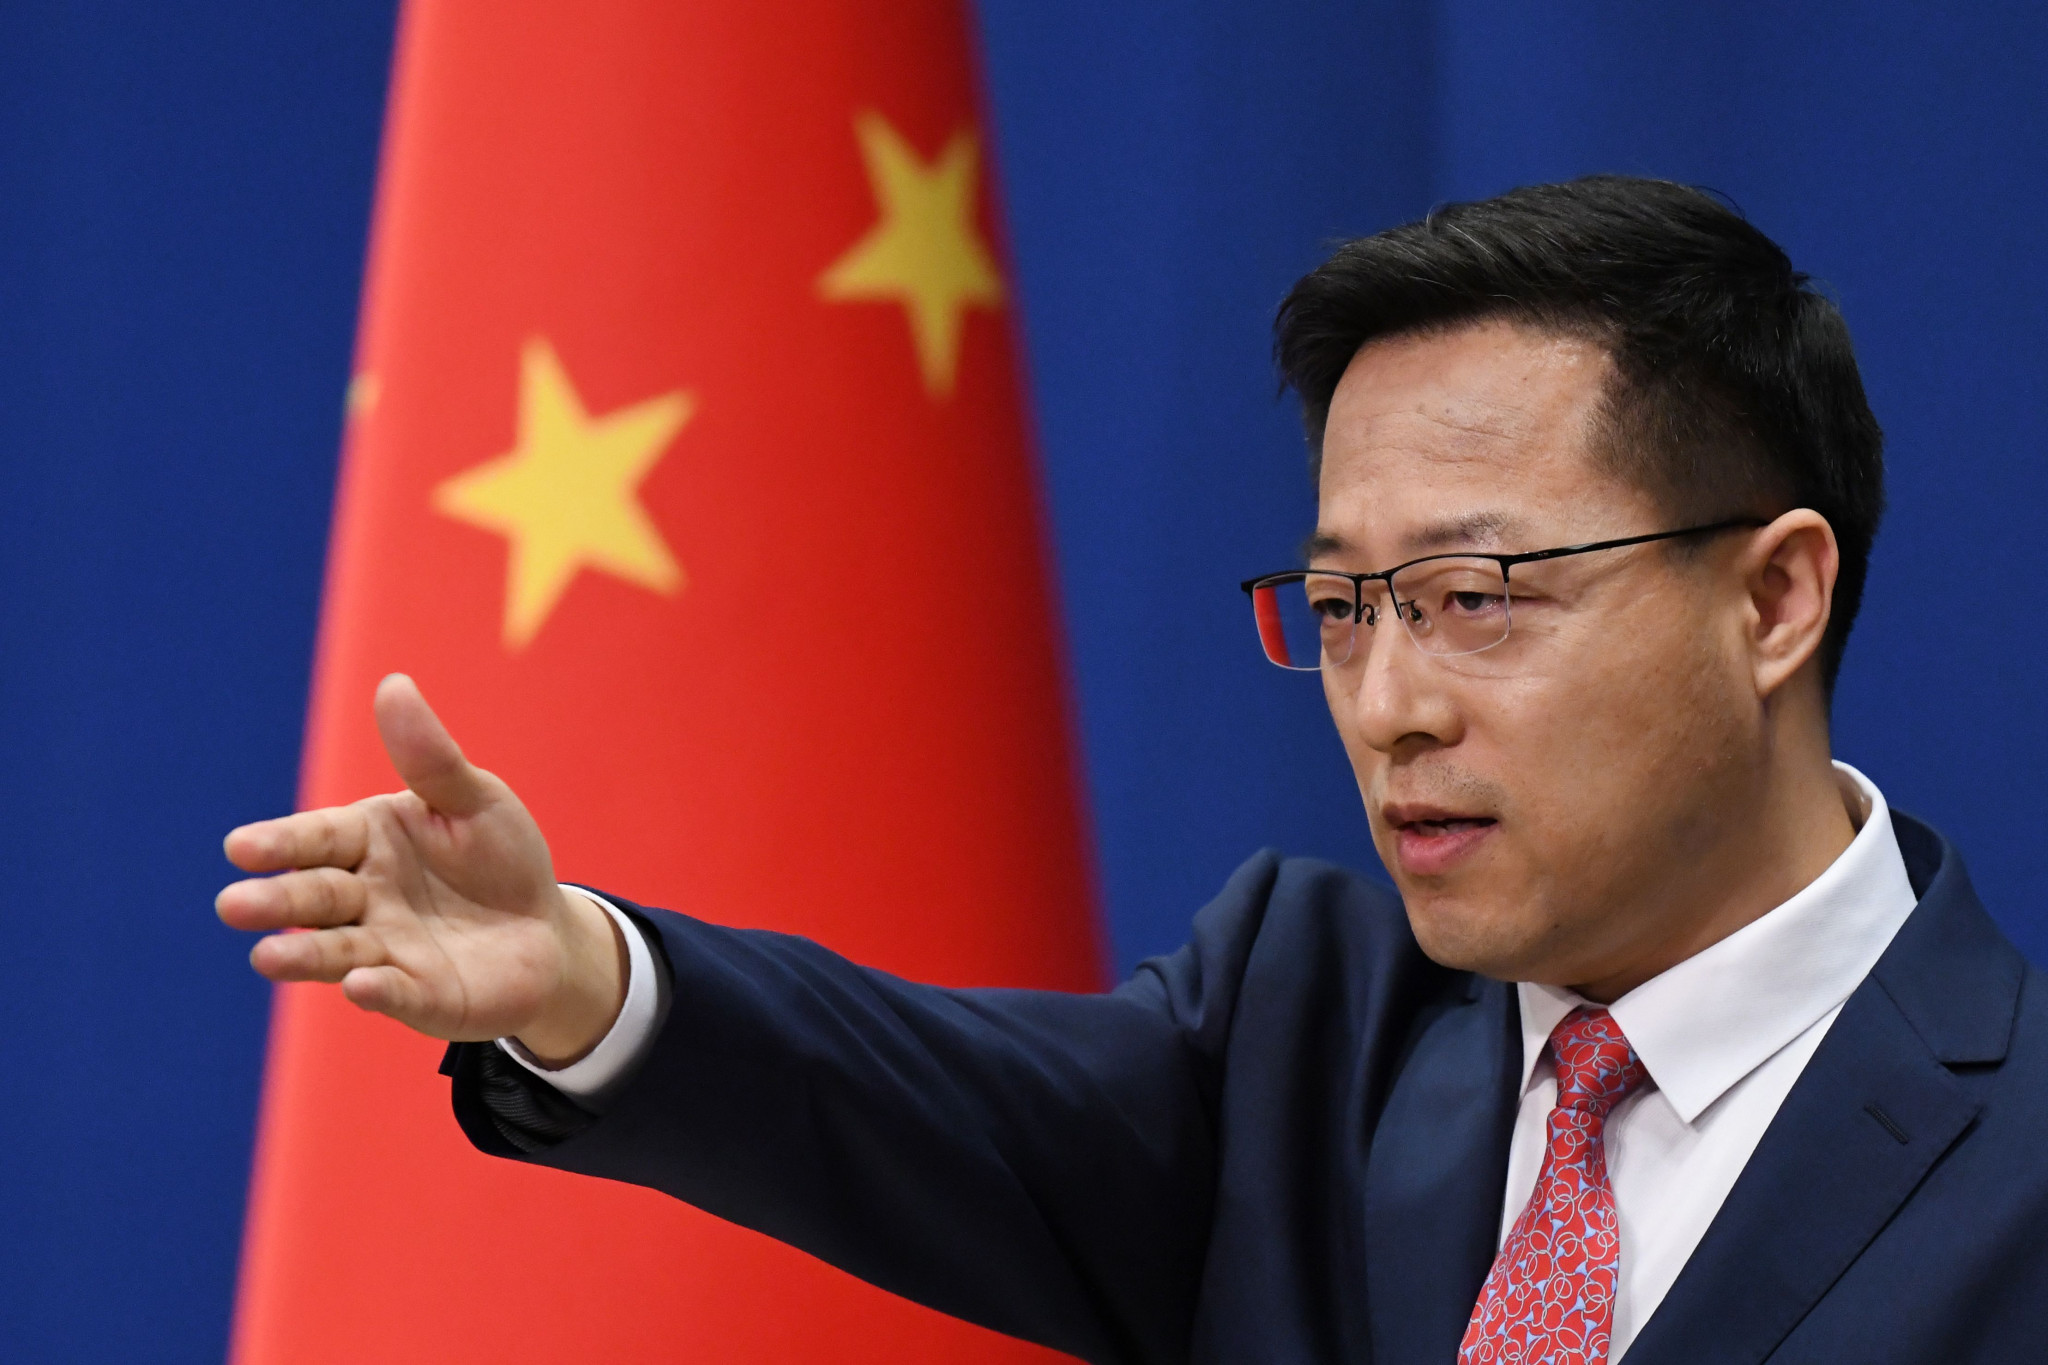 Chinese Foreign Ministry says international community against politicising sport ahead of US-China talks